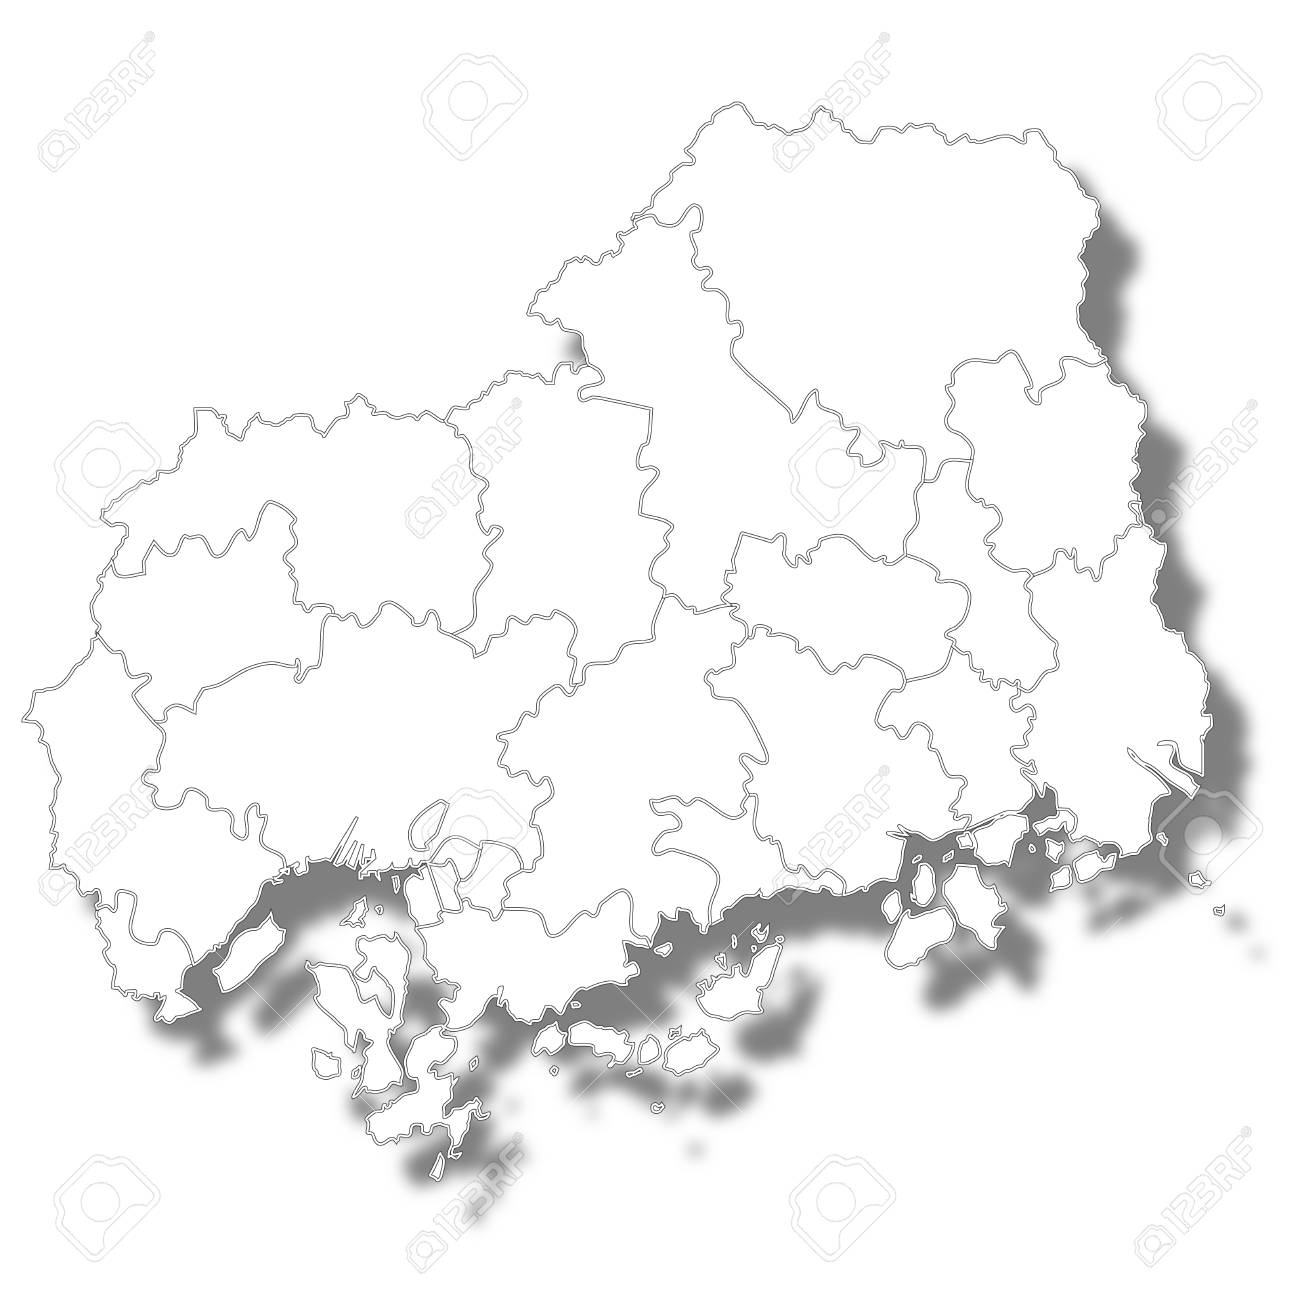 Hiroshima Prefecture Map White Icon Royalty Free Cliparts, Vectors ...